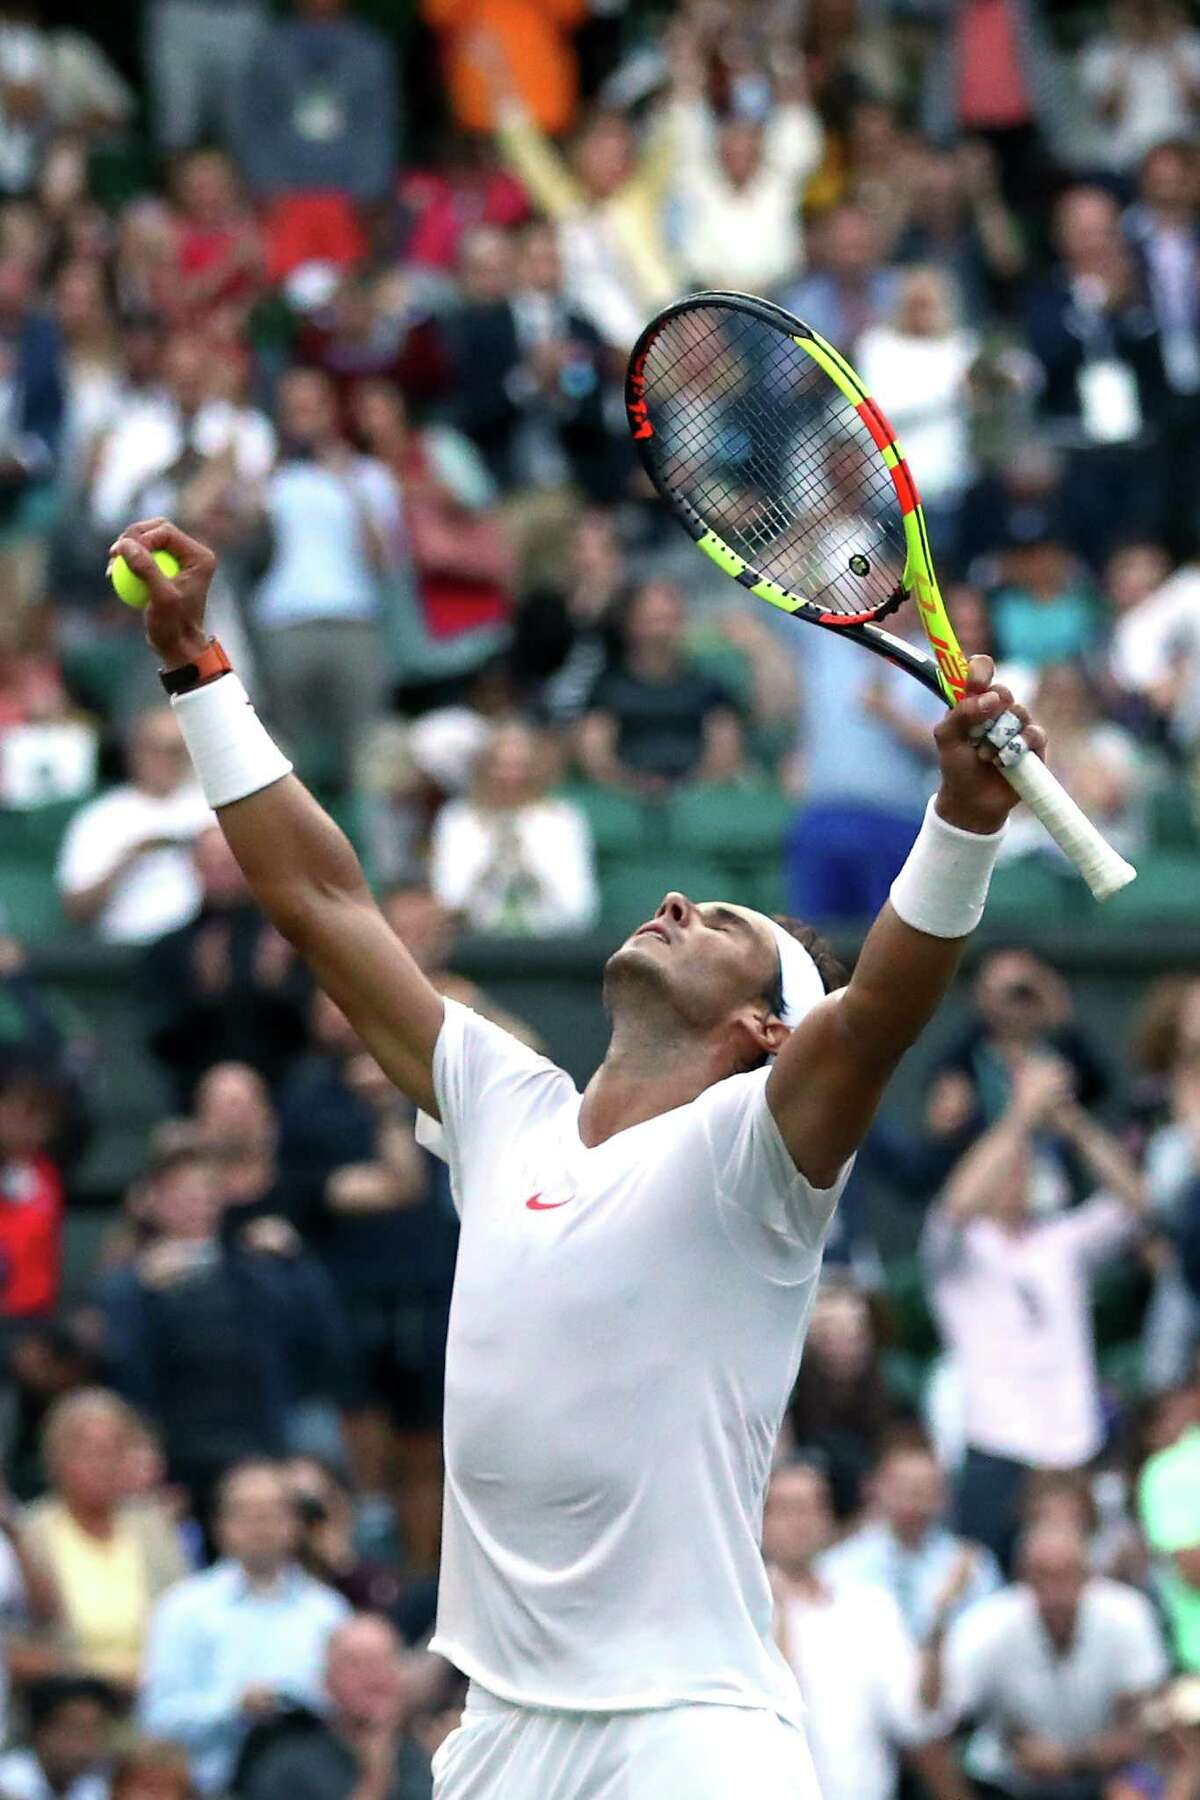 LONDON, ENGLAND - JULY 11: Rafael Nadal of Spain celebrates winning match point against Juan Martin Del Potro of Argentina during their Men's Singles Quarter-Finals match on day nine of the Wimbledon Lawn Tennis Championships at All England Lawn Tennis and Croquet Club on July 11, 2018 in London, England. Nadal won the match 5-7, 7-6, 6-4, 4-6, 4-6 in 4hr 47min. (Photo by Clive Brunskill/Getty Images)